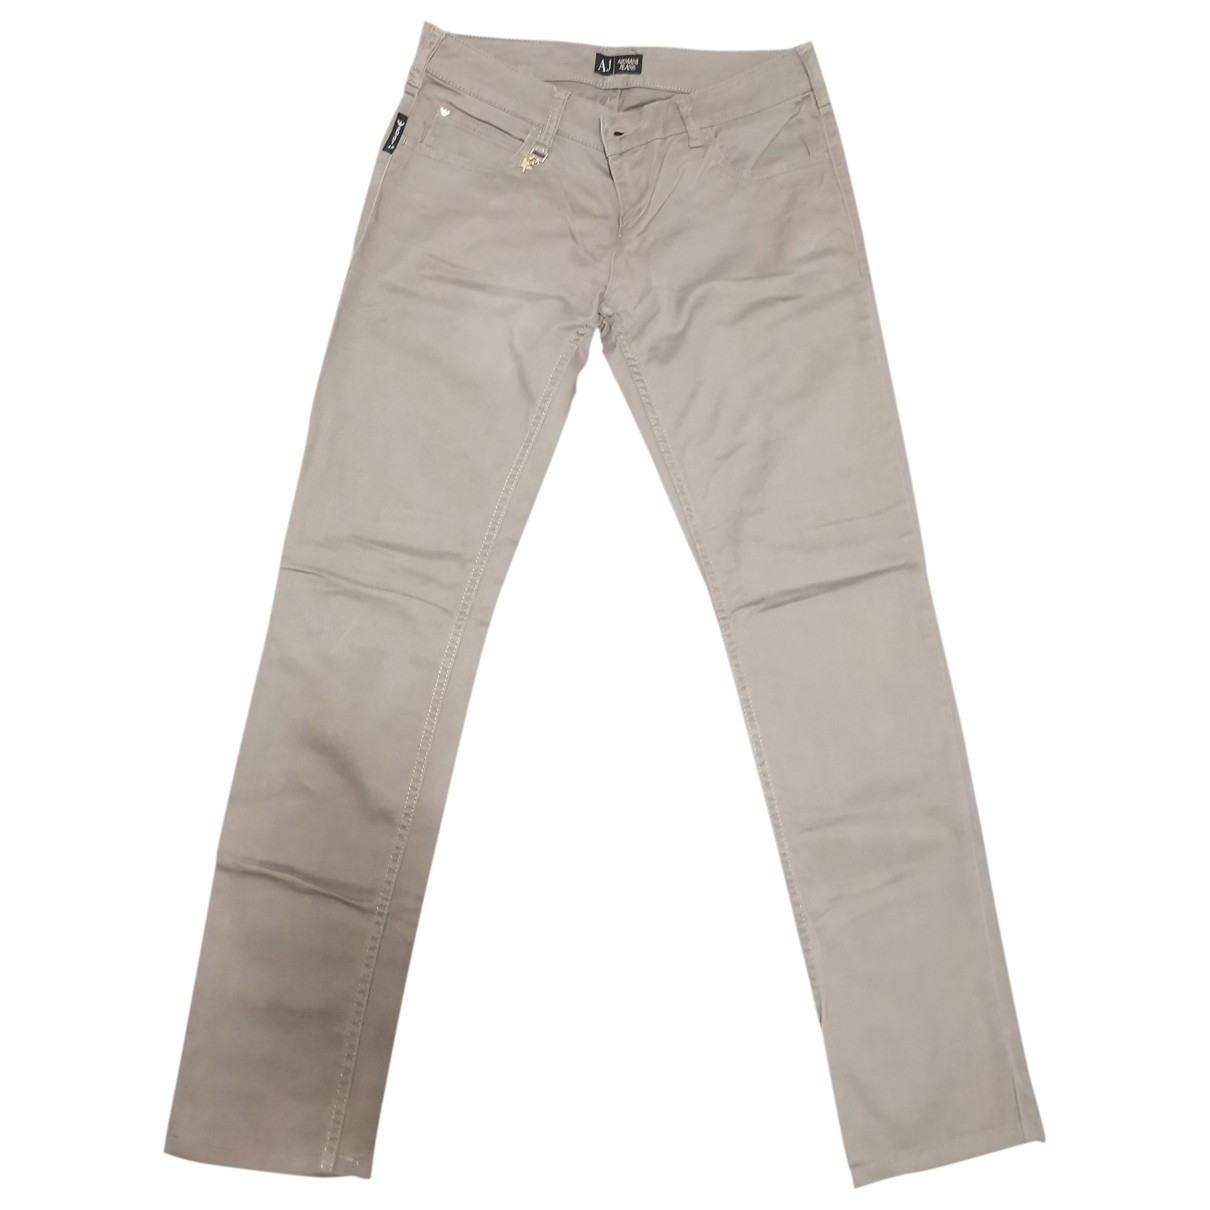 Armani Jeans \N Grey Cotton Trousers for Women 42 IT